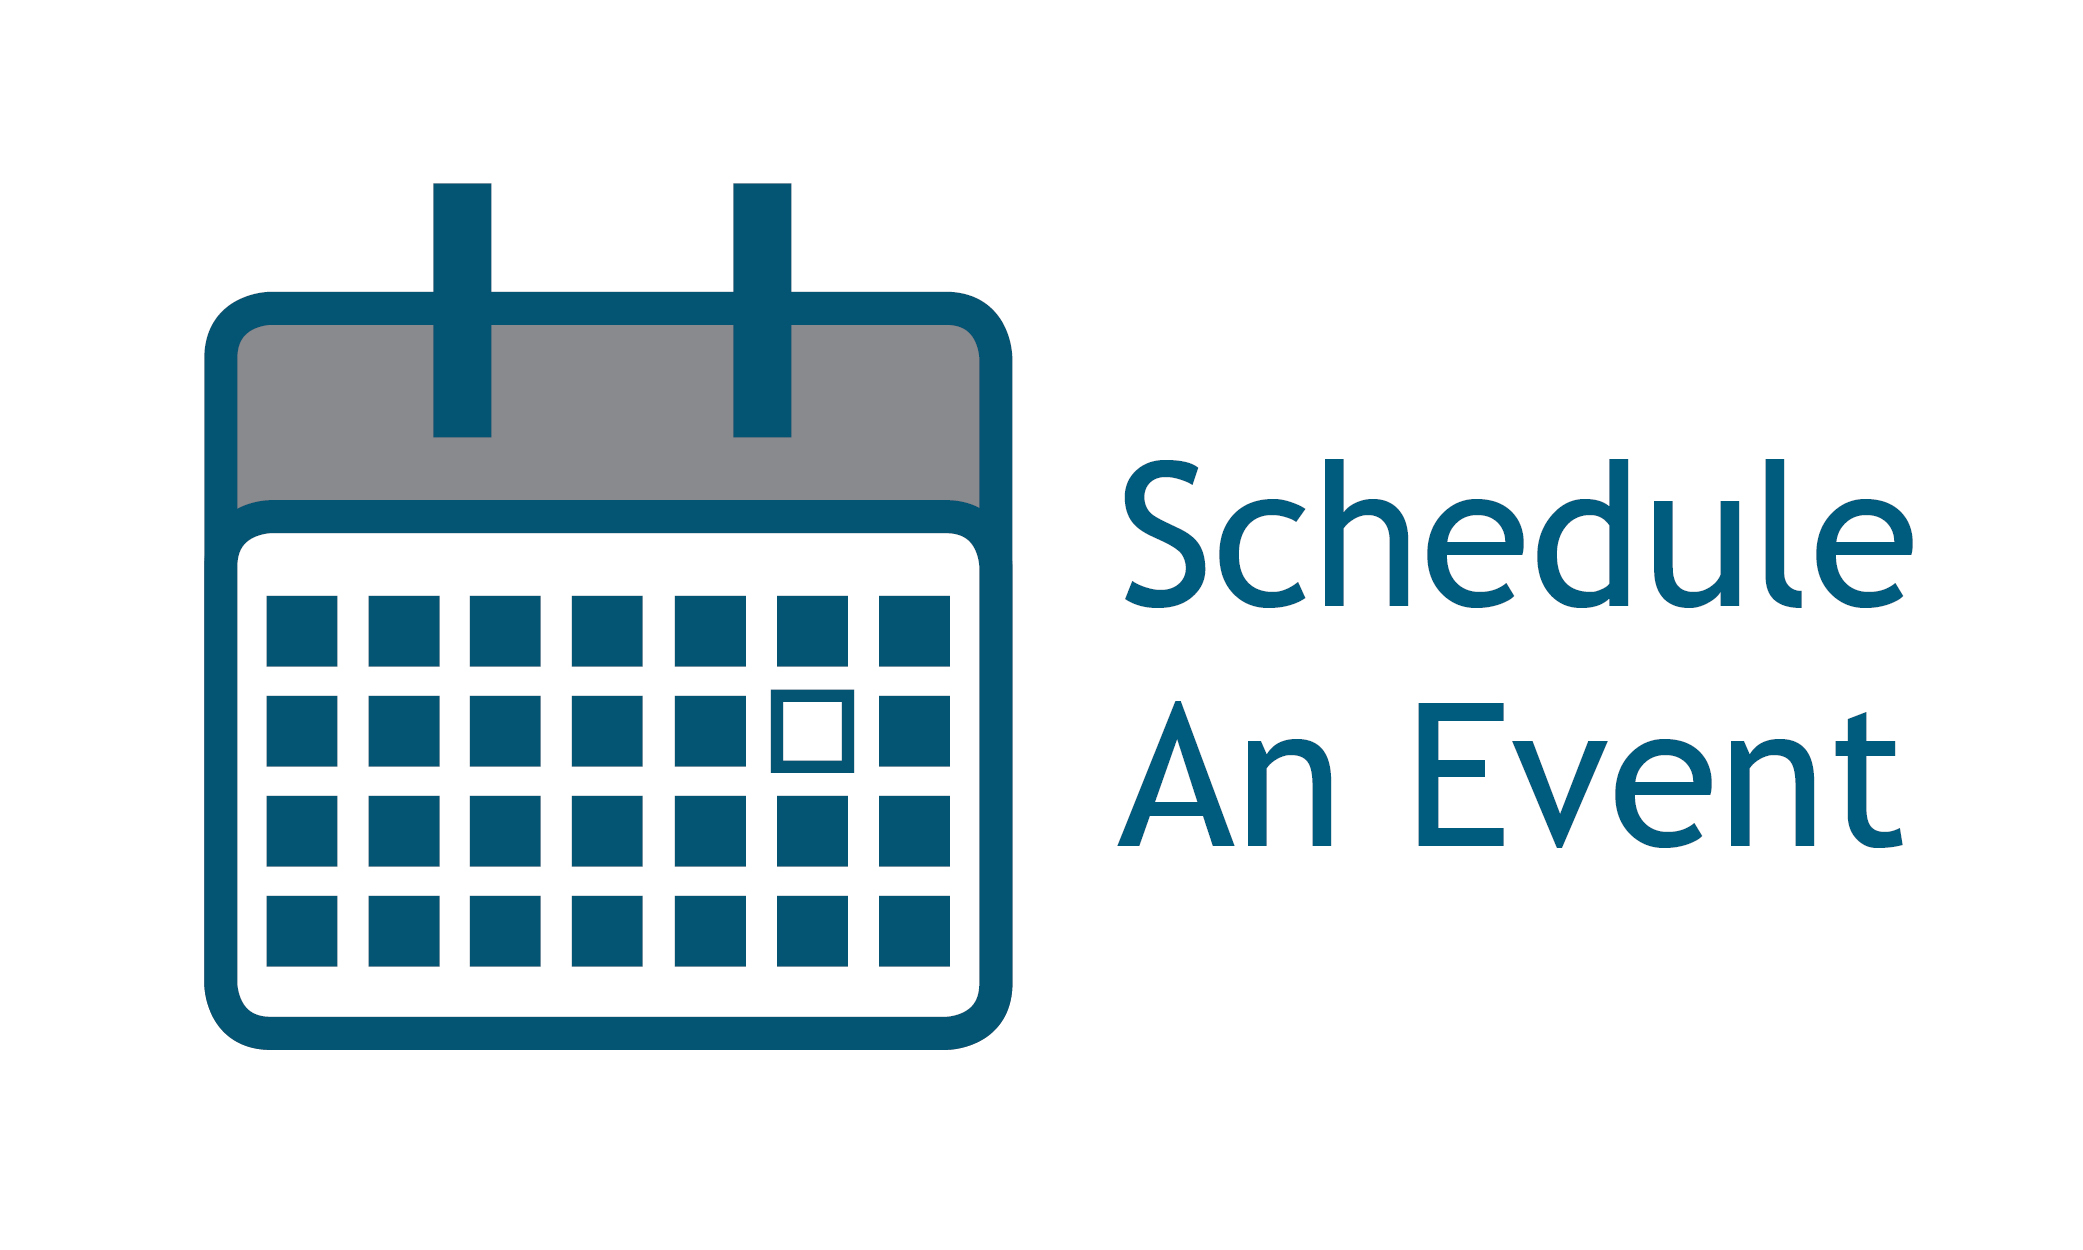 Schedule An Event_2018_Thumbnail